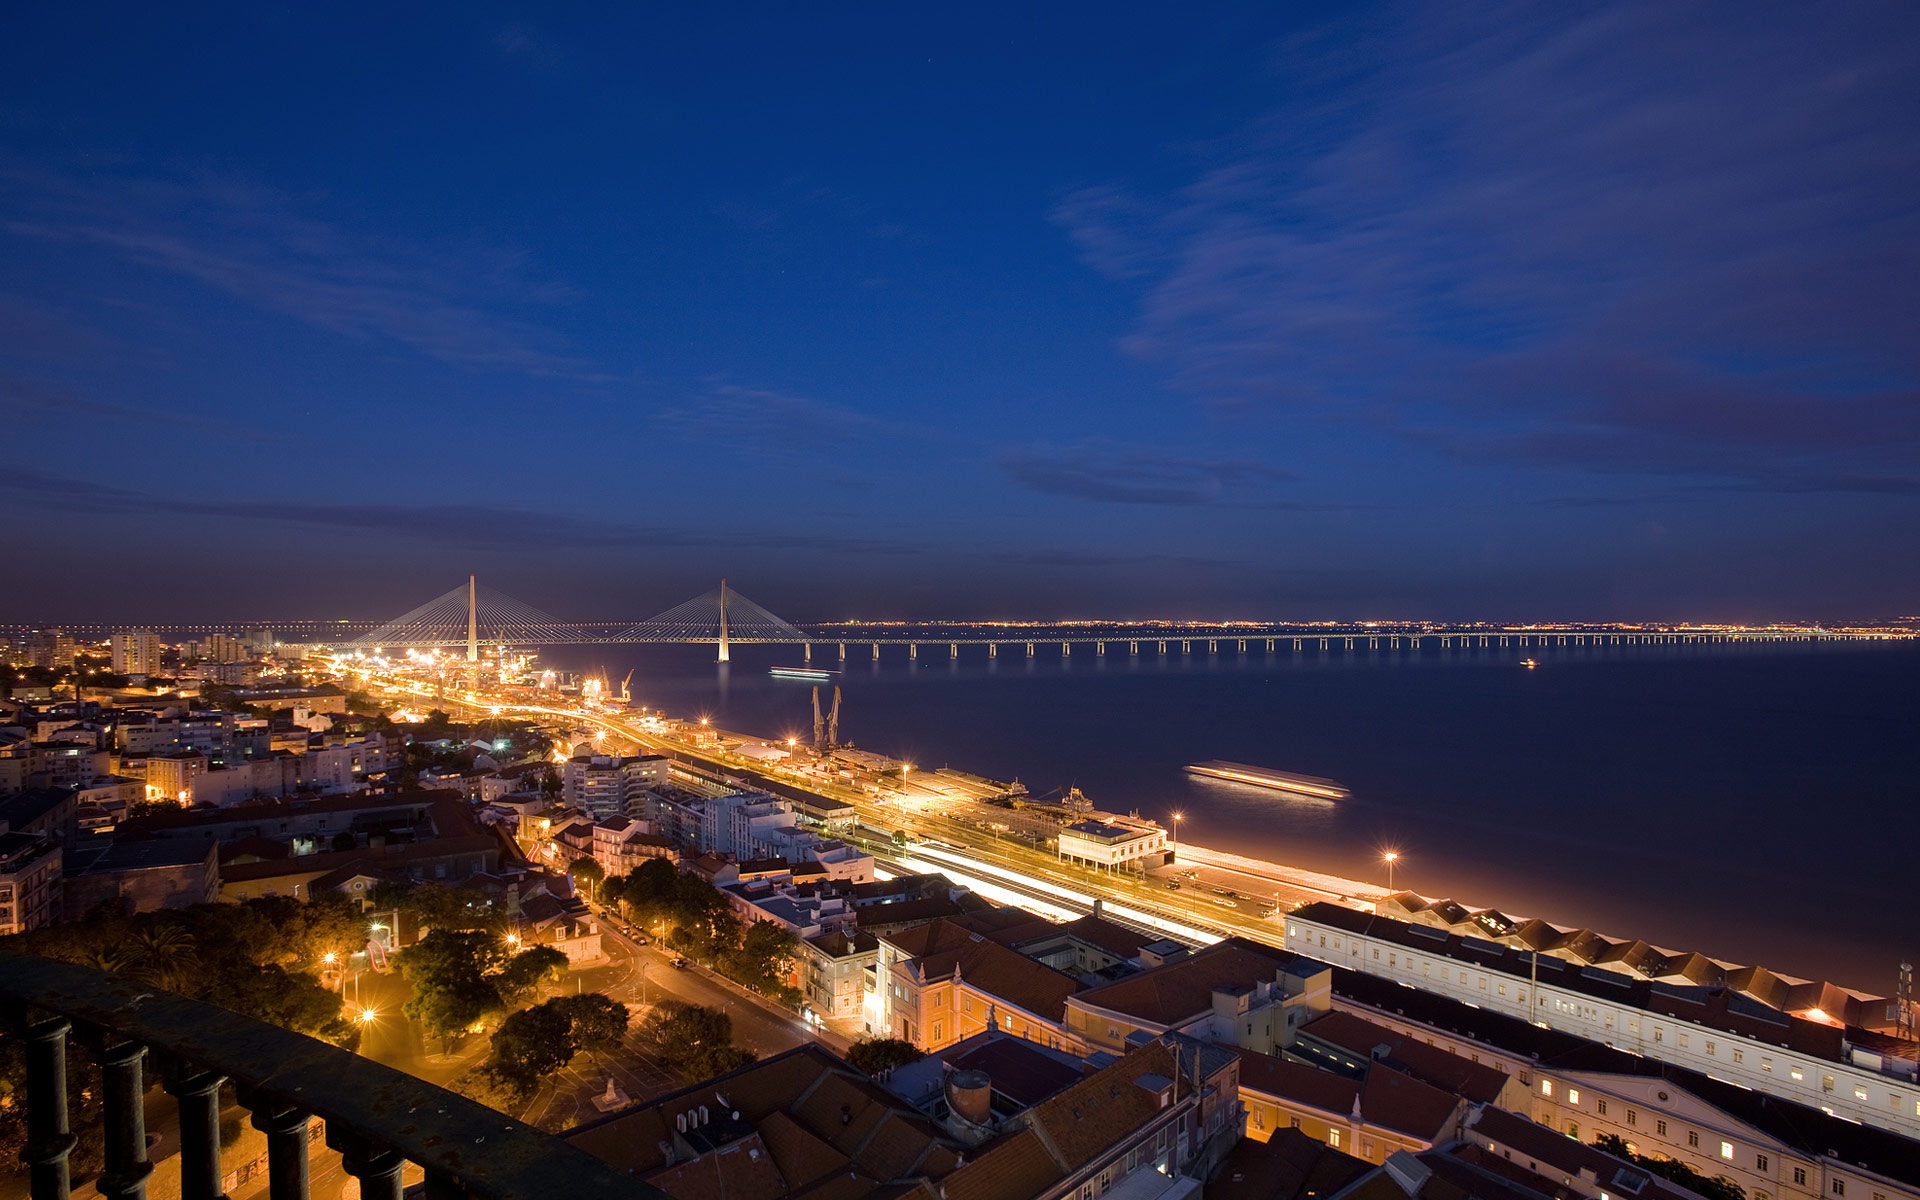 Nocturna New Lisbon Bridge wallpaper